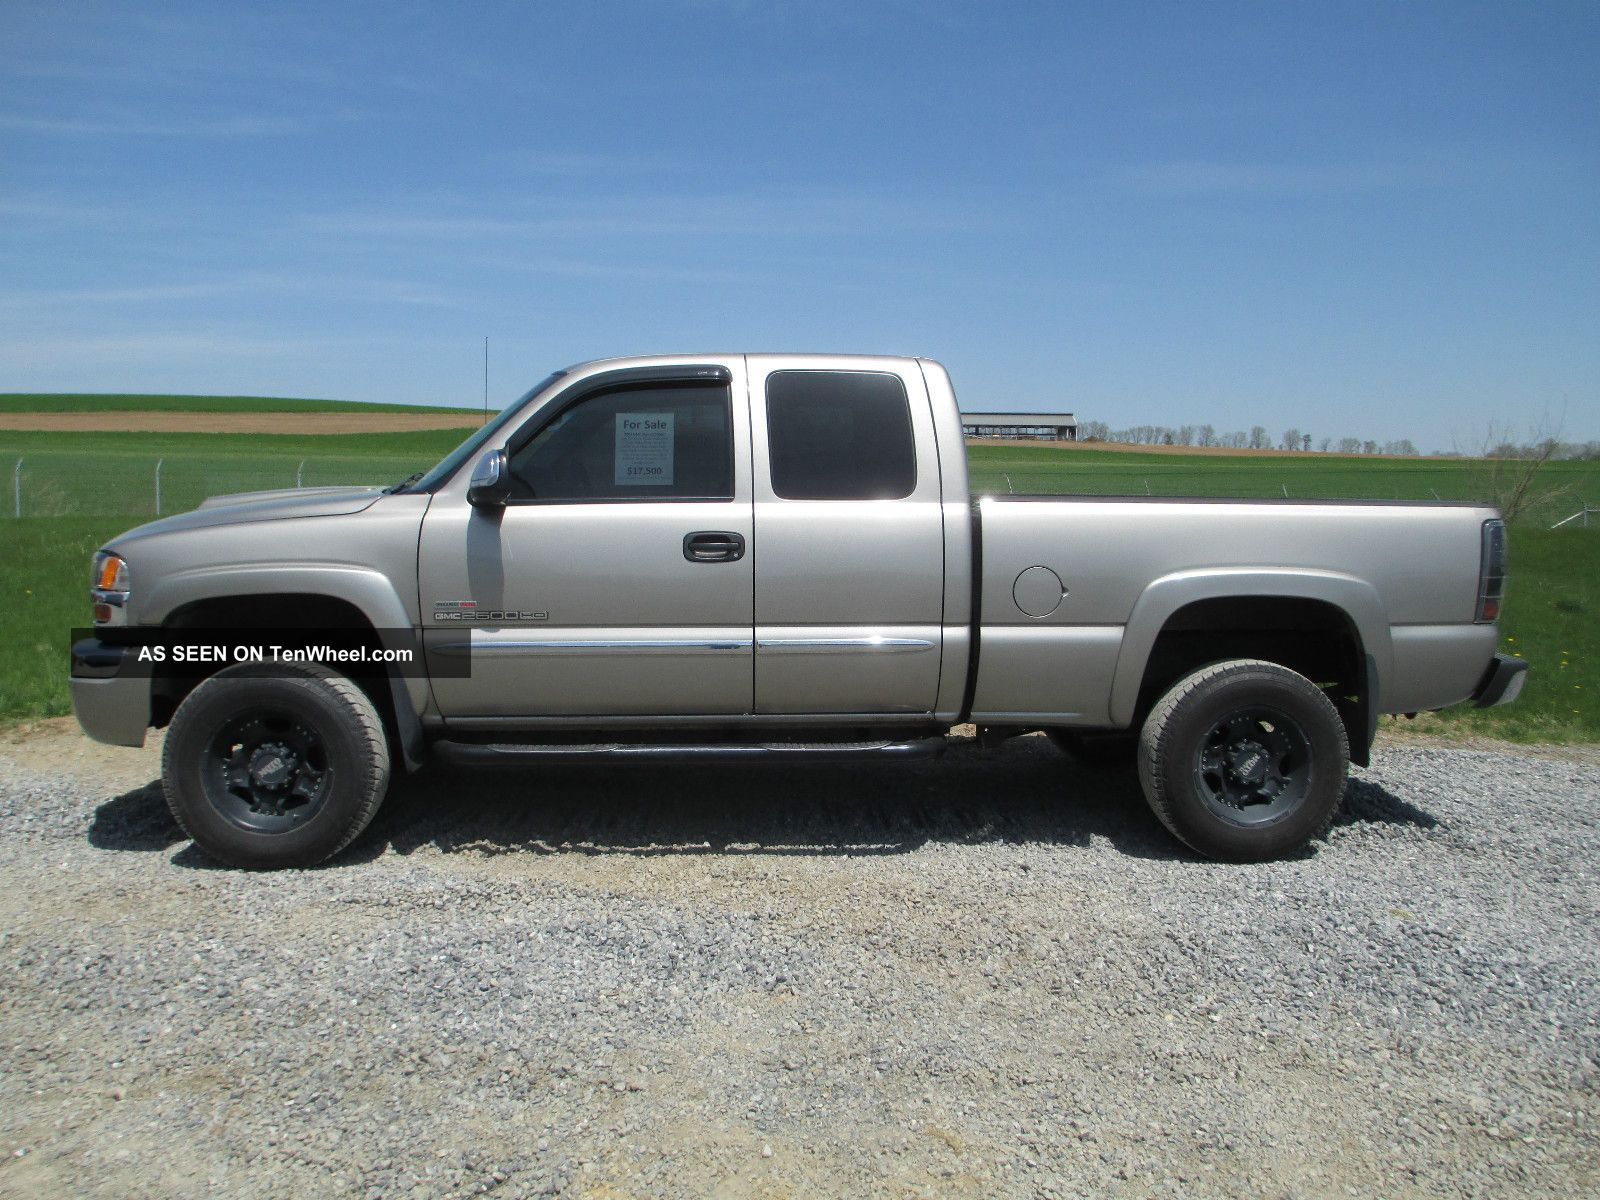 2003 2500Hd diesel duramax duty gmc heavy pickup truck #2